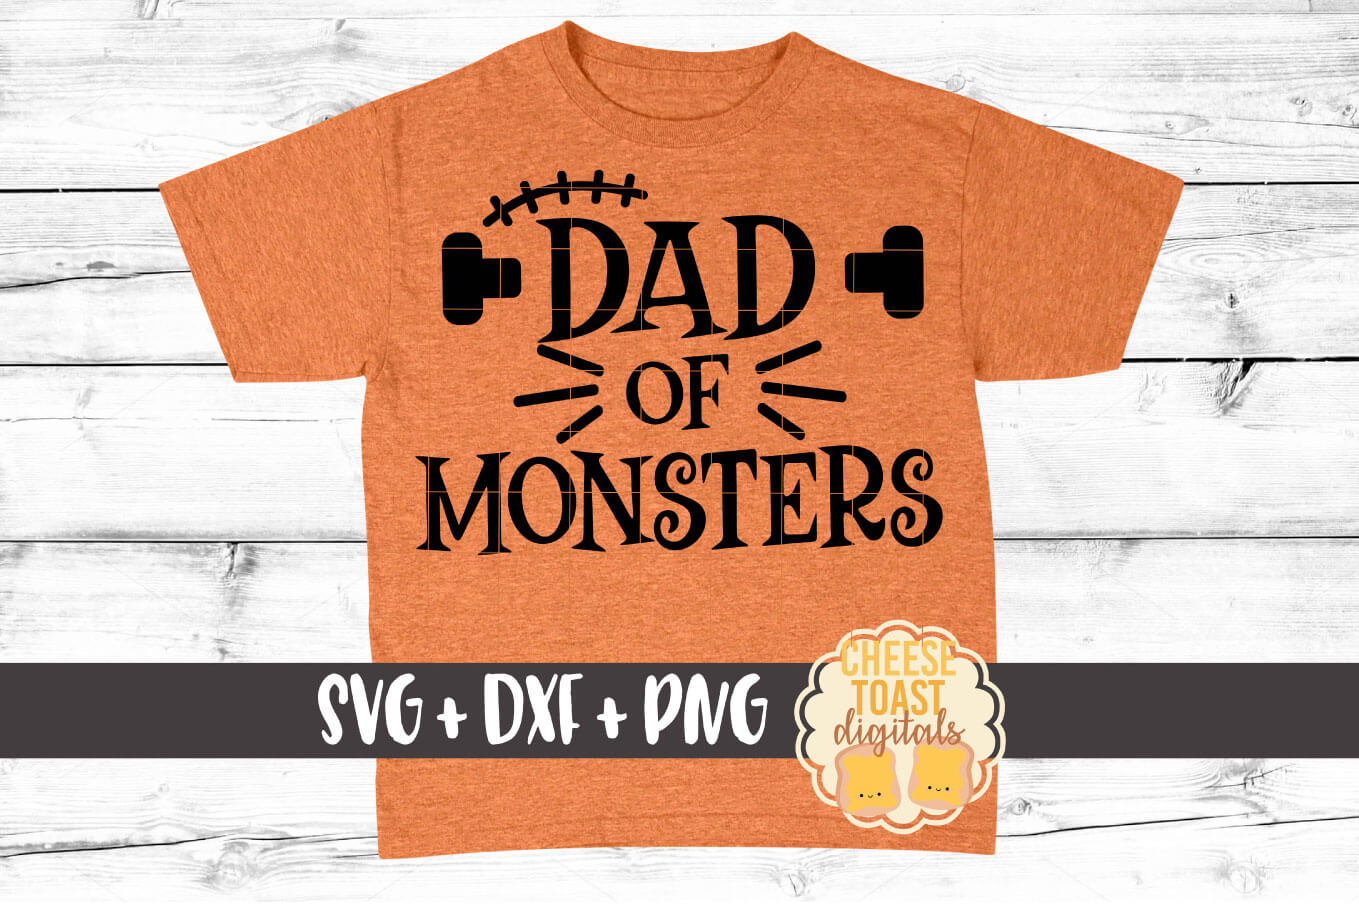 Download Free Dad Of Monsters Graphic By Cheesetoastdigitals Creative Fabrica for Cricut Explore, Silhouette and other cutting machines.